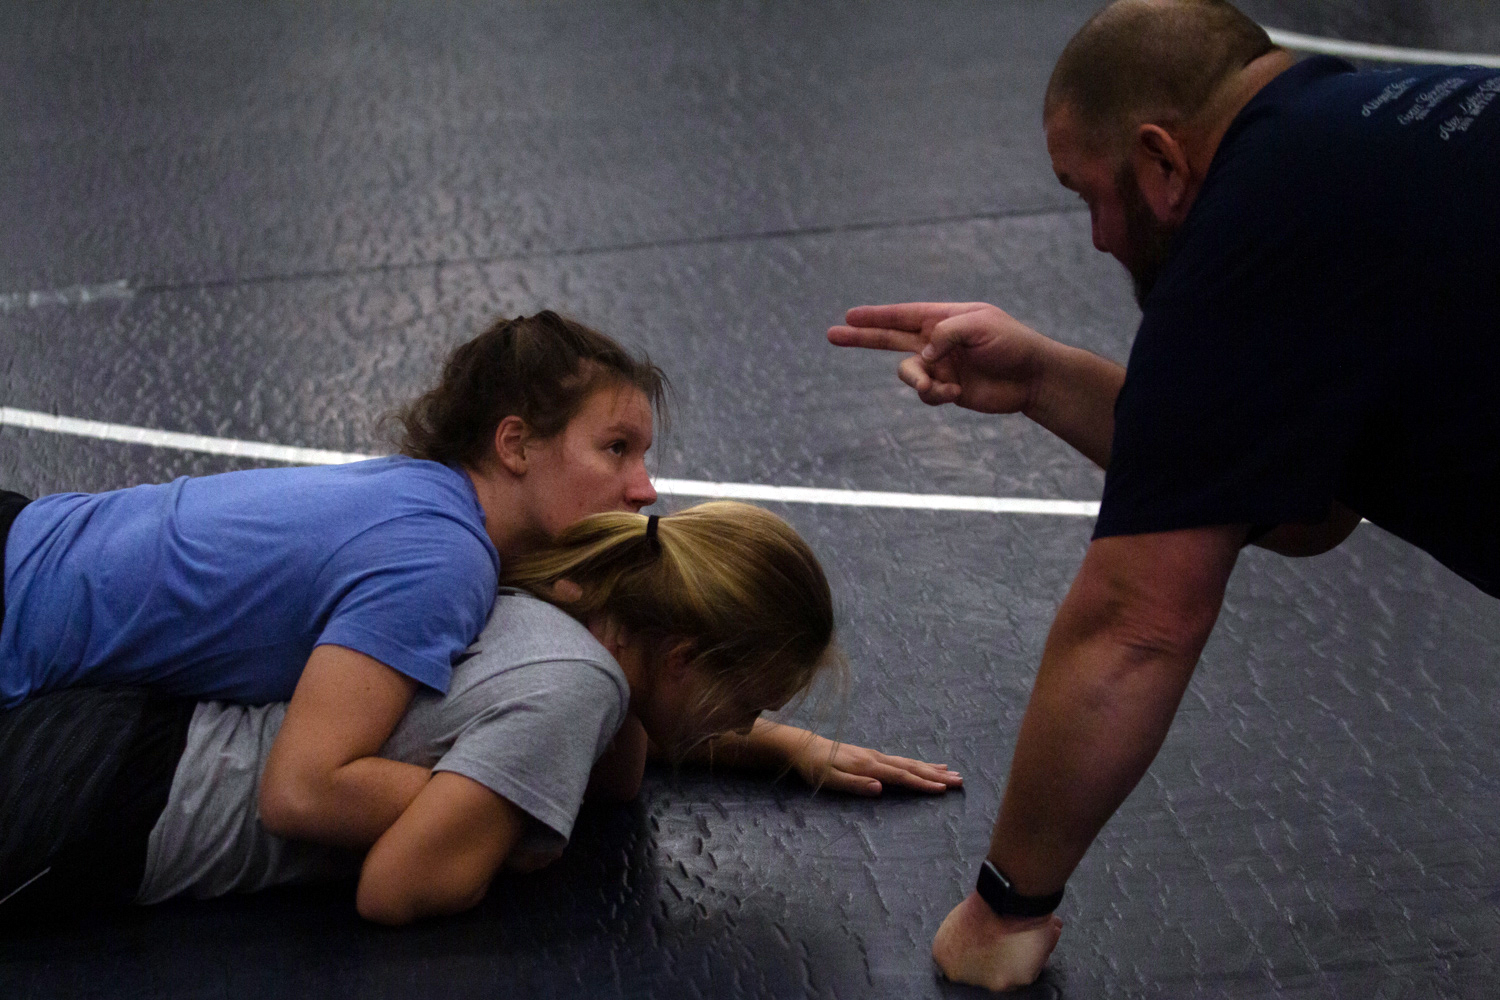 Coach Kurt Kruse directs junior Rhyen Standridge on how to properly execute a half-nelson on Mary Kate Neal. Practicing challenges at practice improve their performance at meets.